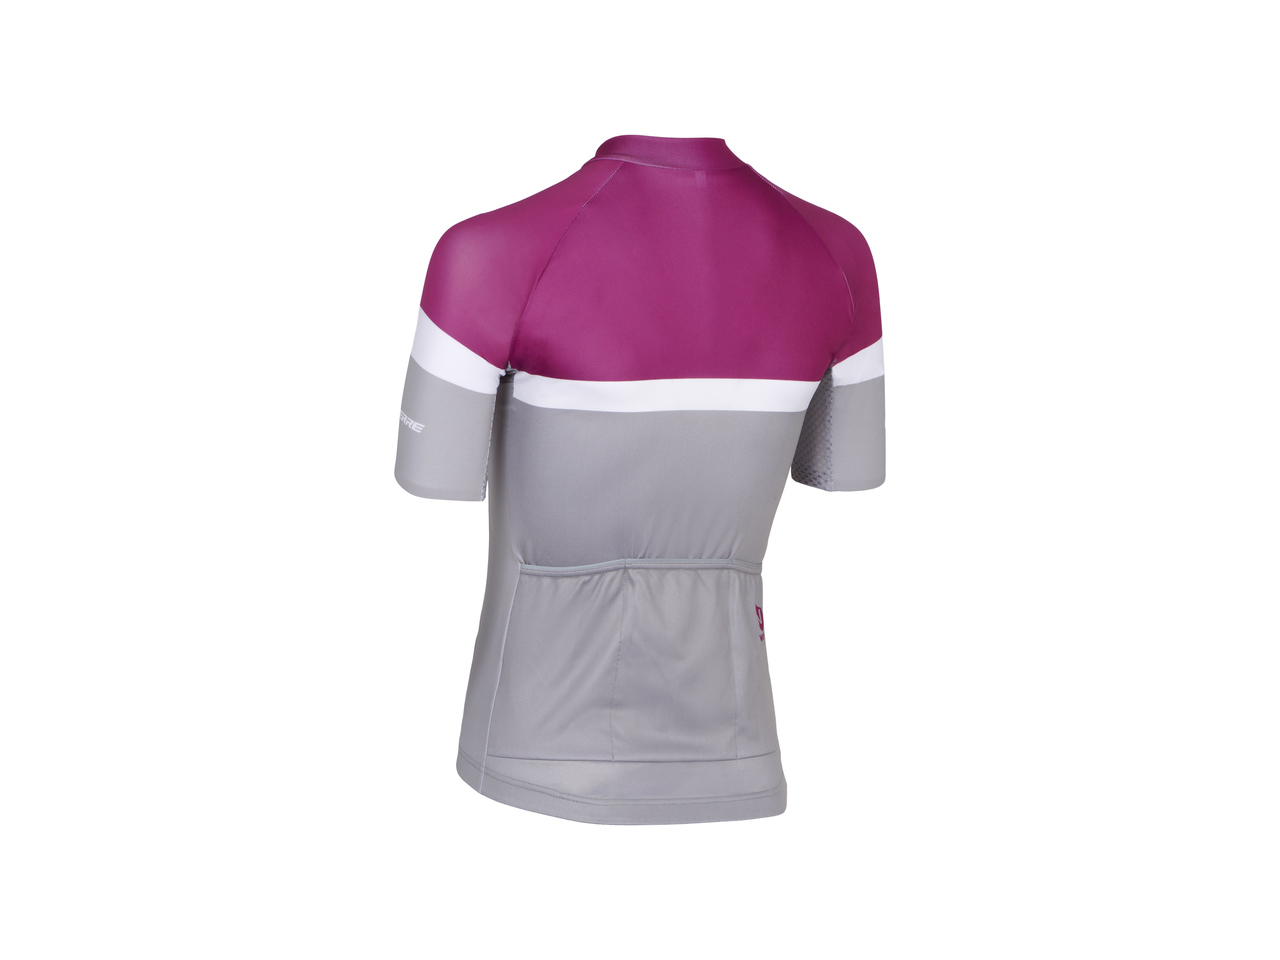 Lapierre Ultimate SL Madeleine Cycling Jersey for women - Back